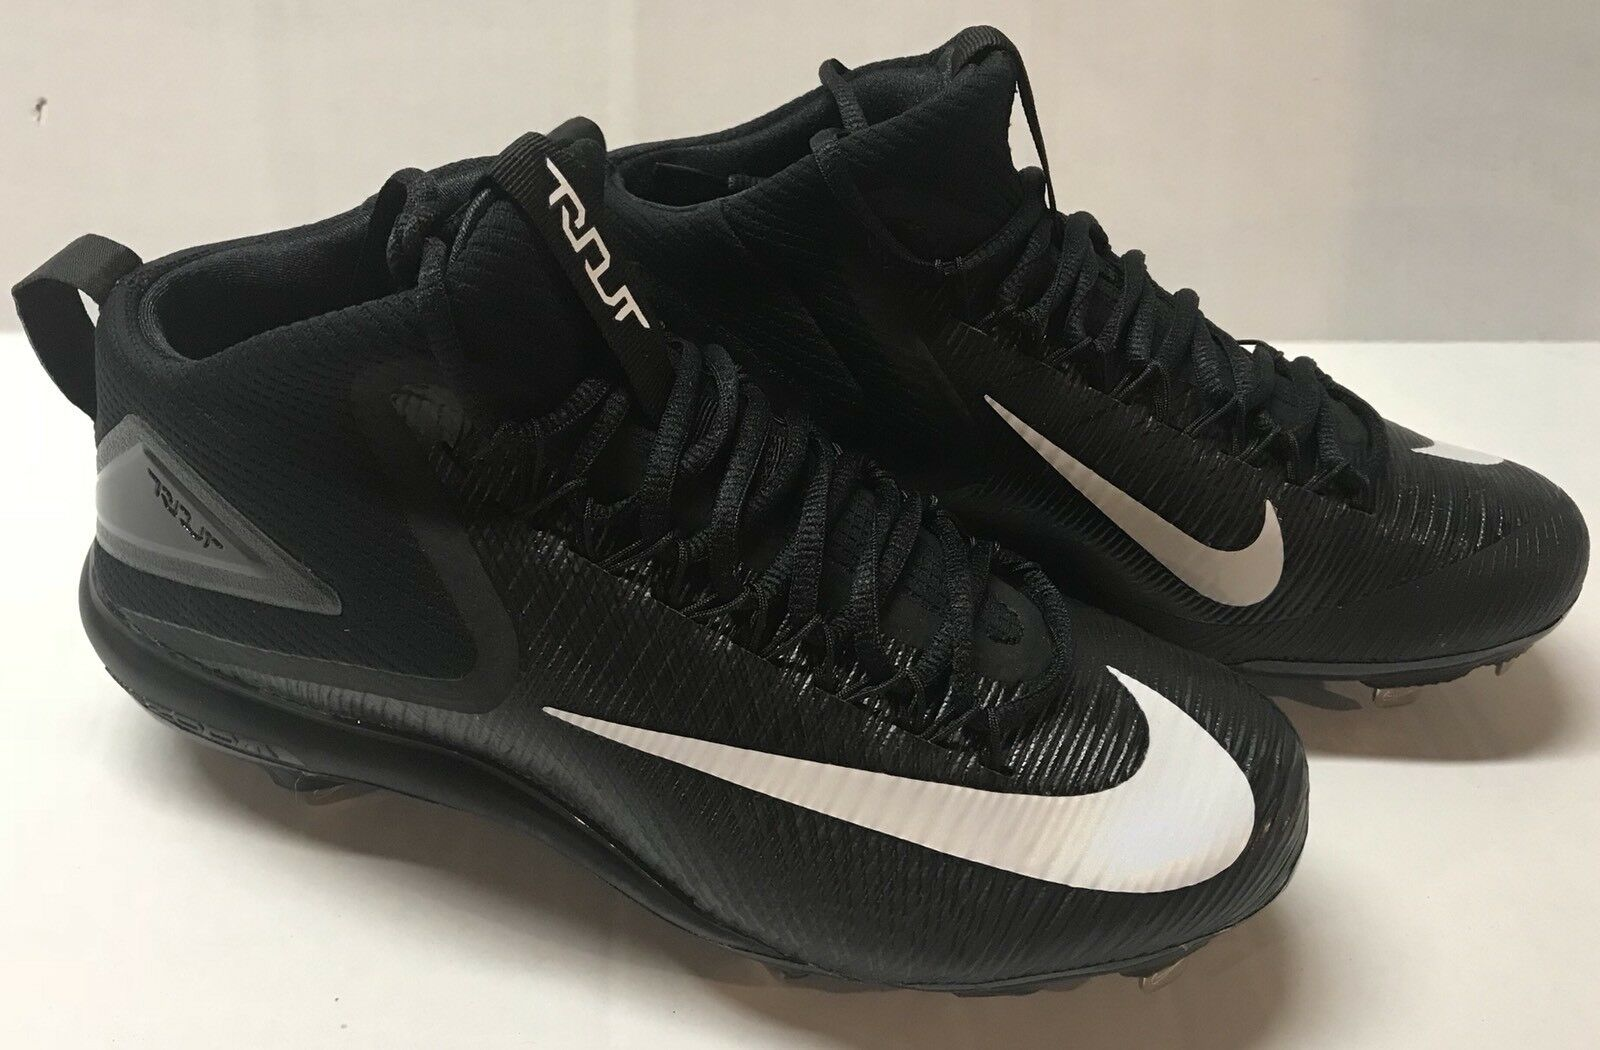 newest 93646 26eee NEW NIKE Men Sz 10 Force Zoom Mike Trout 3 Metal Baseball Cleats 856503-011